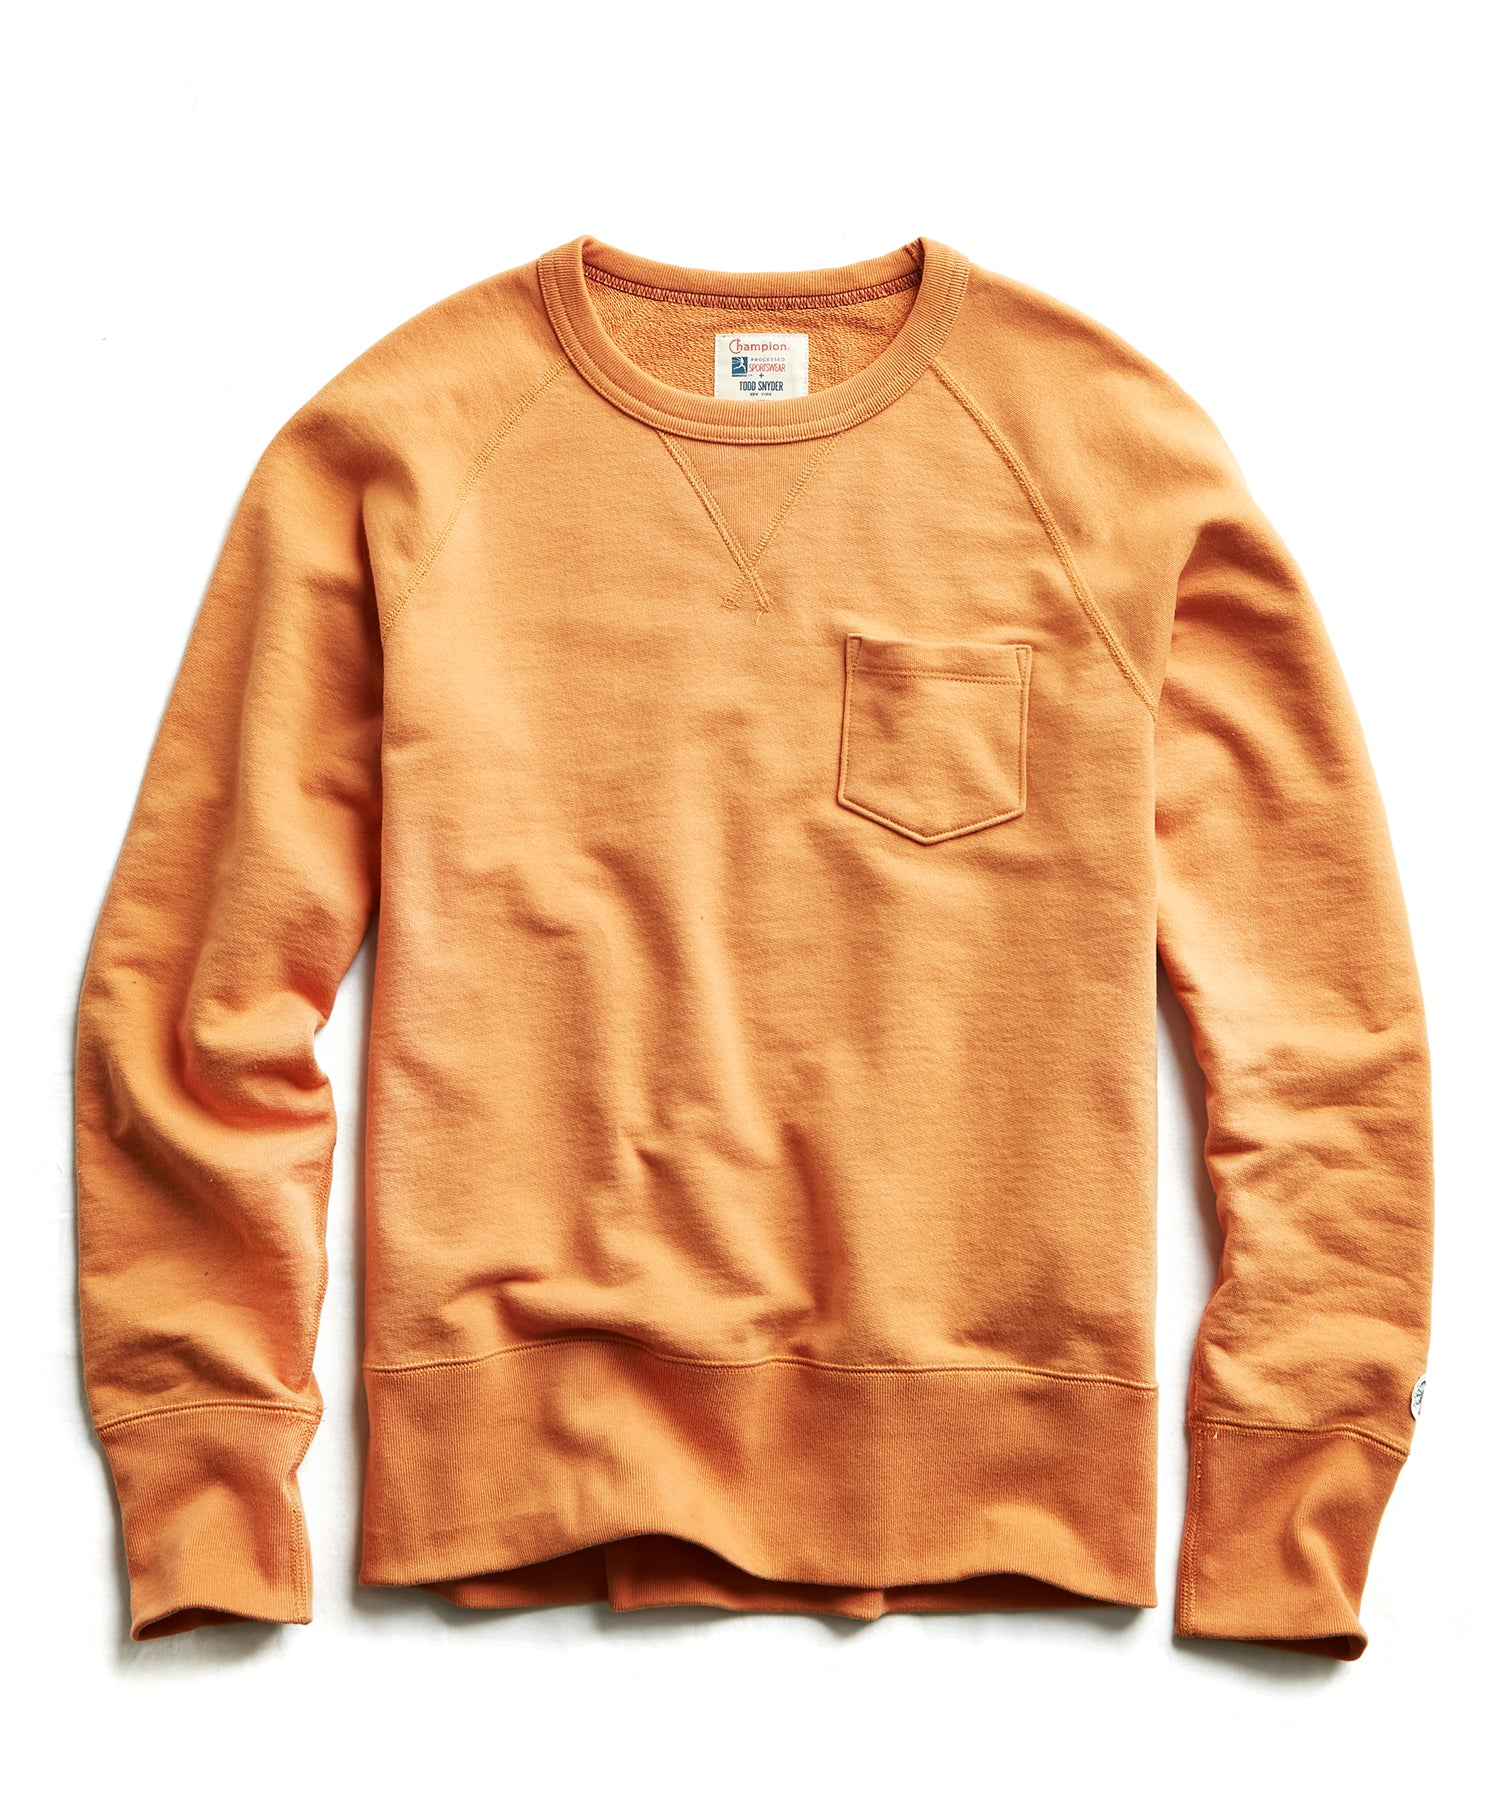 Terry Pocket Sweatshirt in Smokey Topaz